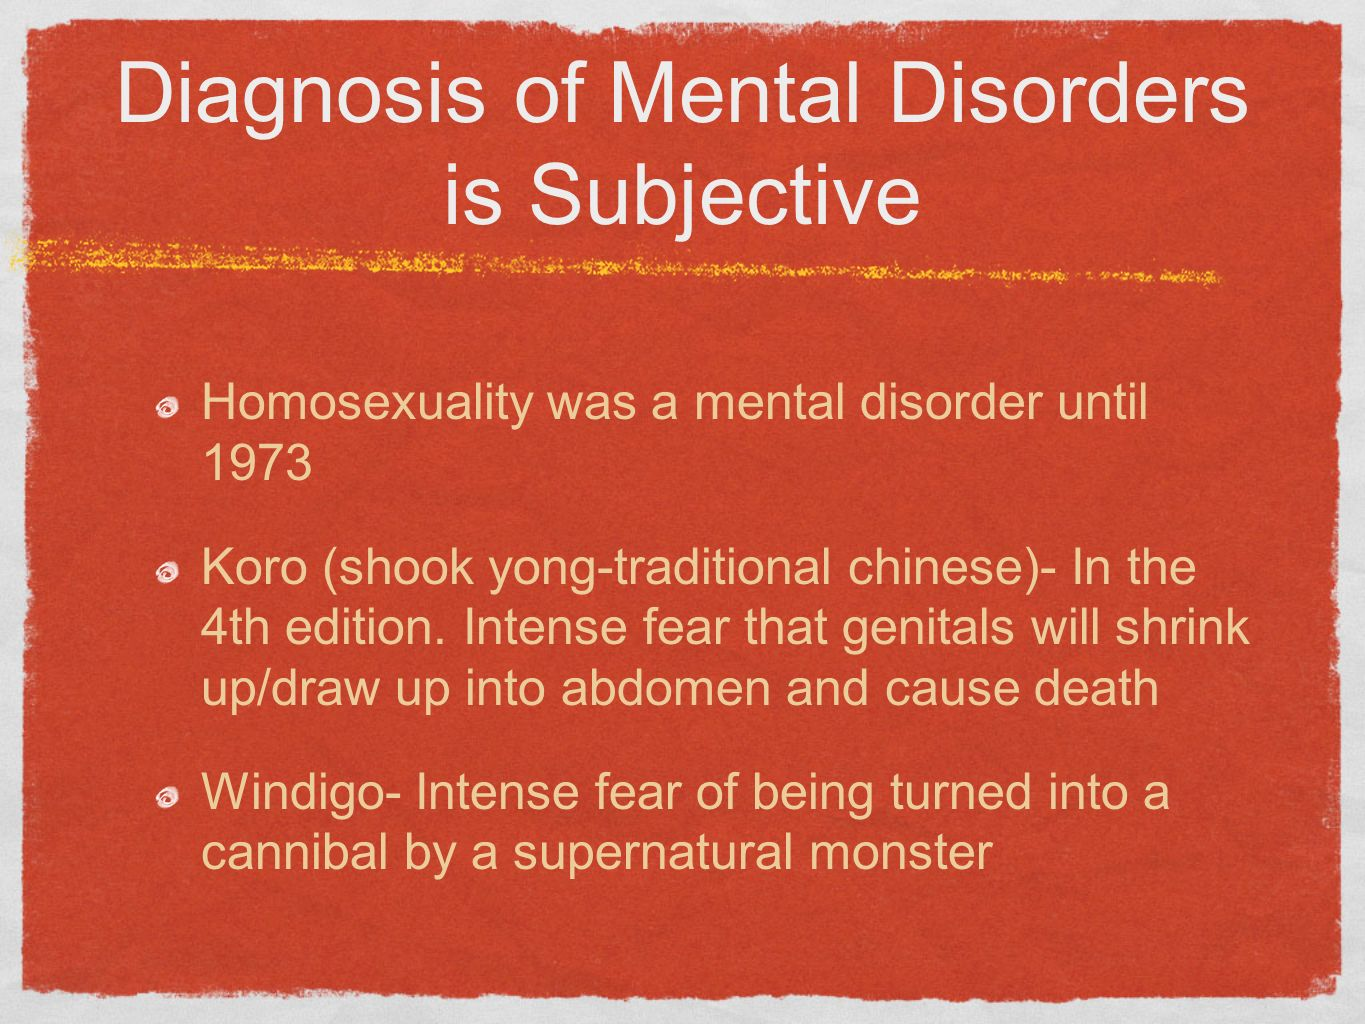 Diagnosis of Mental Disorders is Subjective